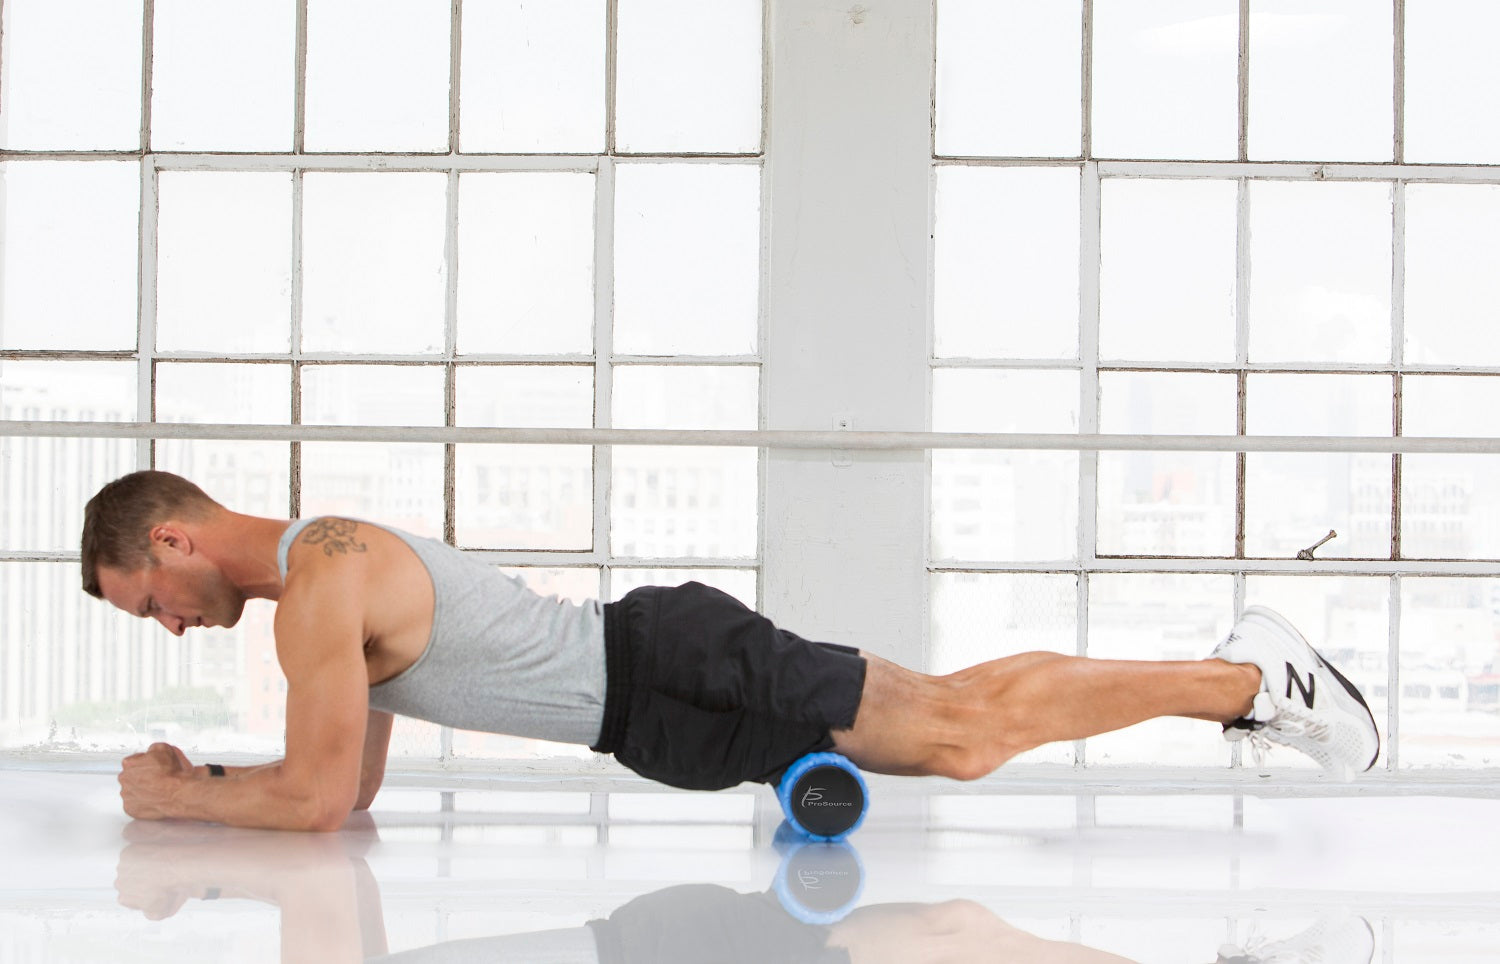 Man using a ProSource 2-in-1 Hexa Massage Roller for self-myofascial release on his thighs